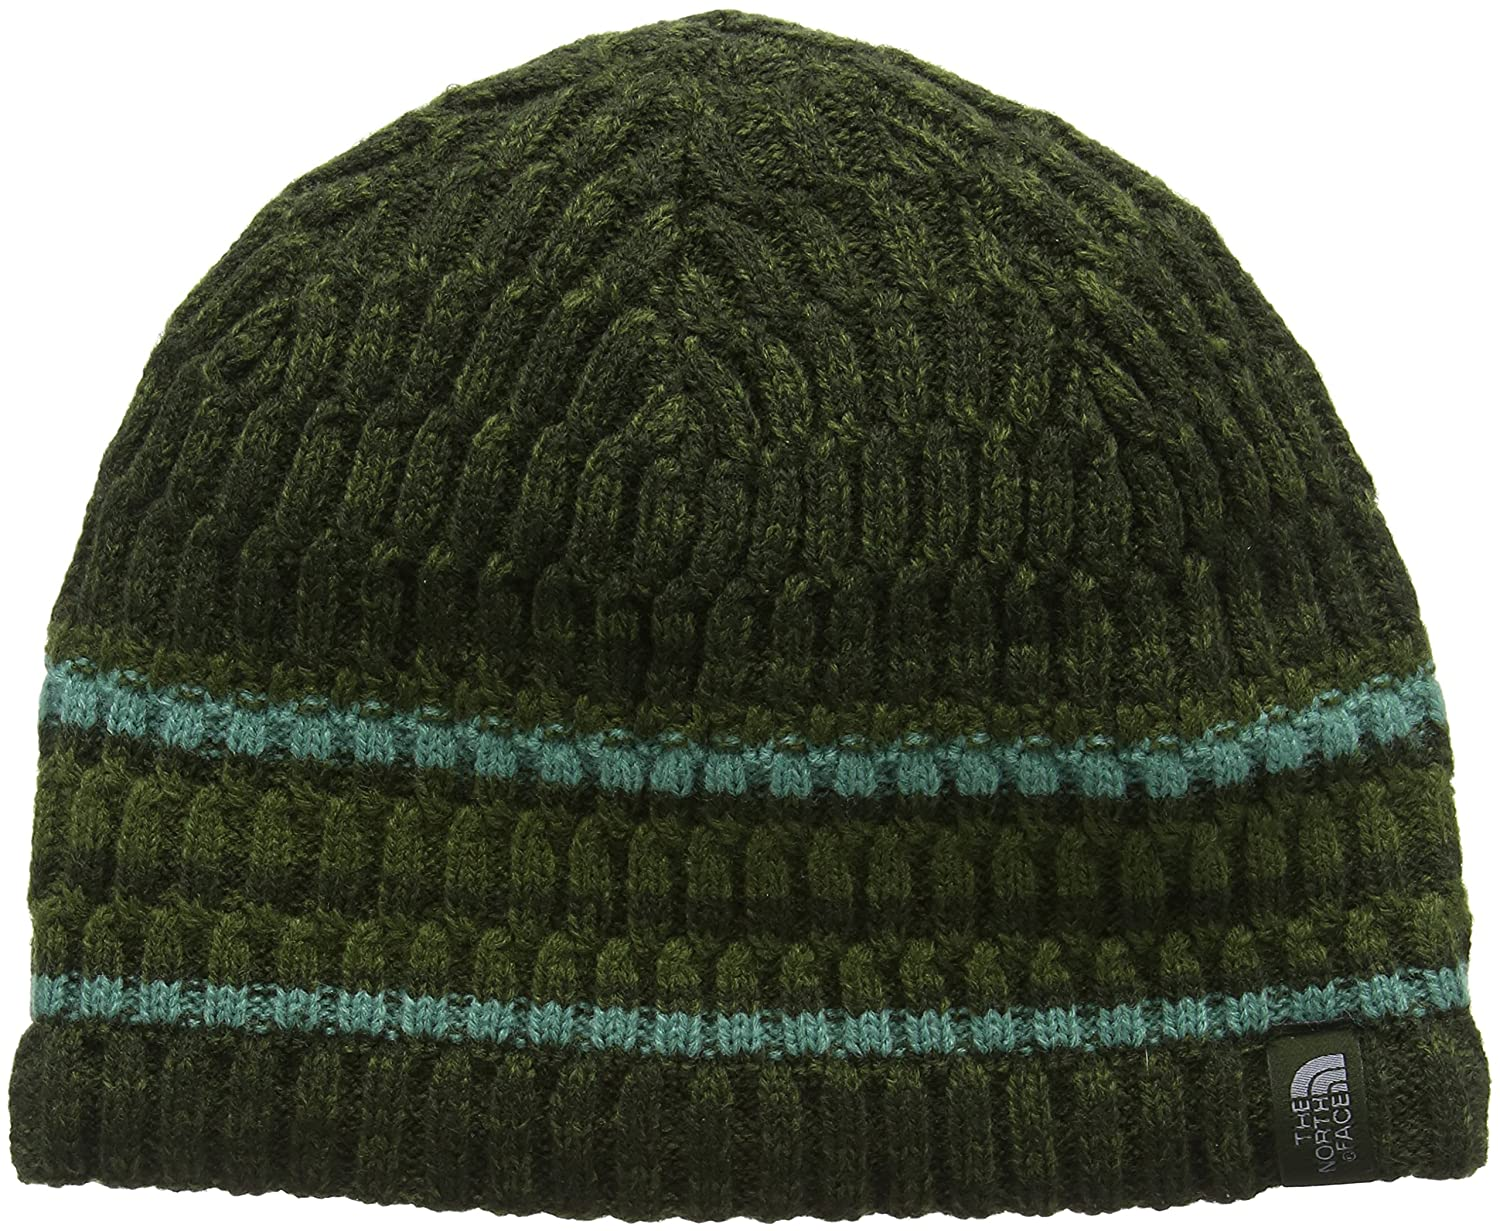 6dae1ced4d852 North Face the Blues Beanie, Green/Turquoise/Grey/Rosin Green, One Size:  Amazon.co.uk: Sports & Outdoors